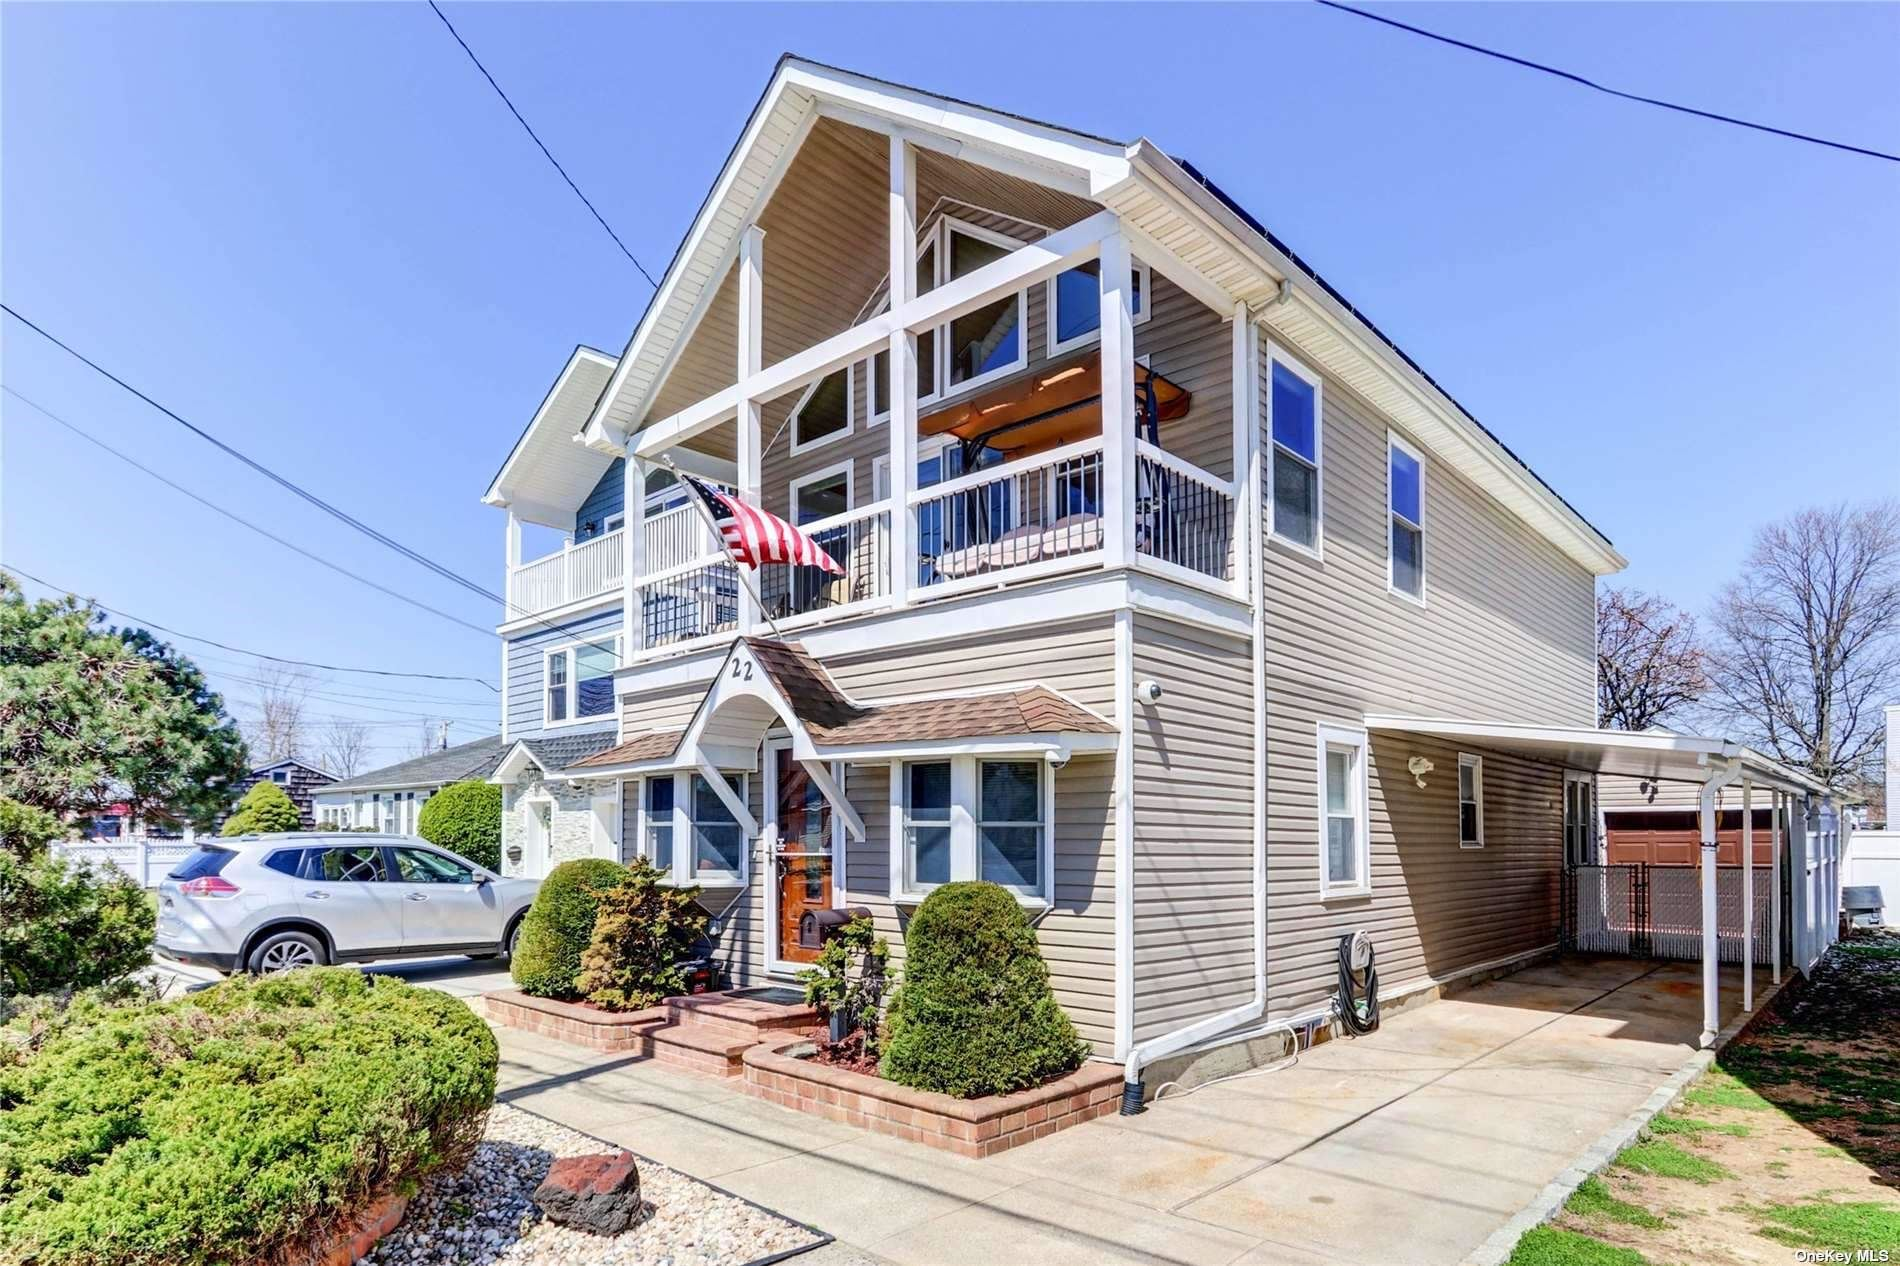 22 North Boulevard, East Rockaway, NY 11518 - MLS#: 3300094